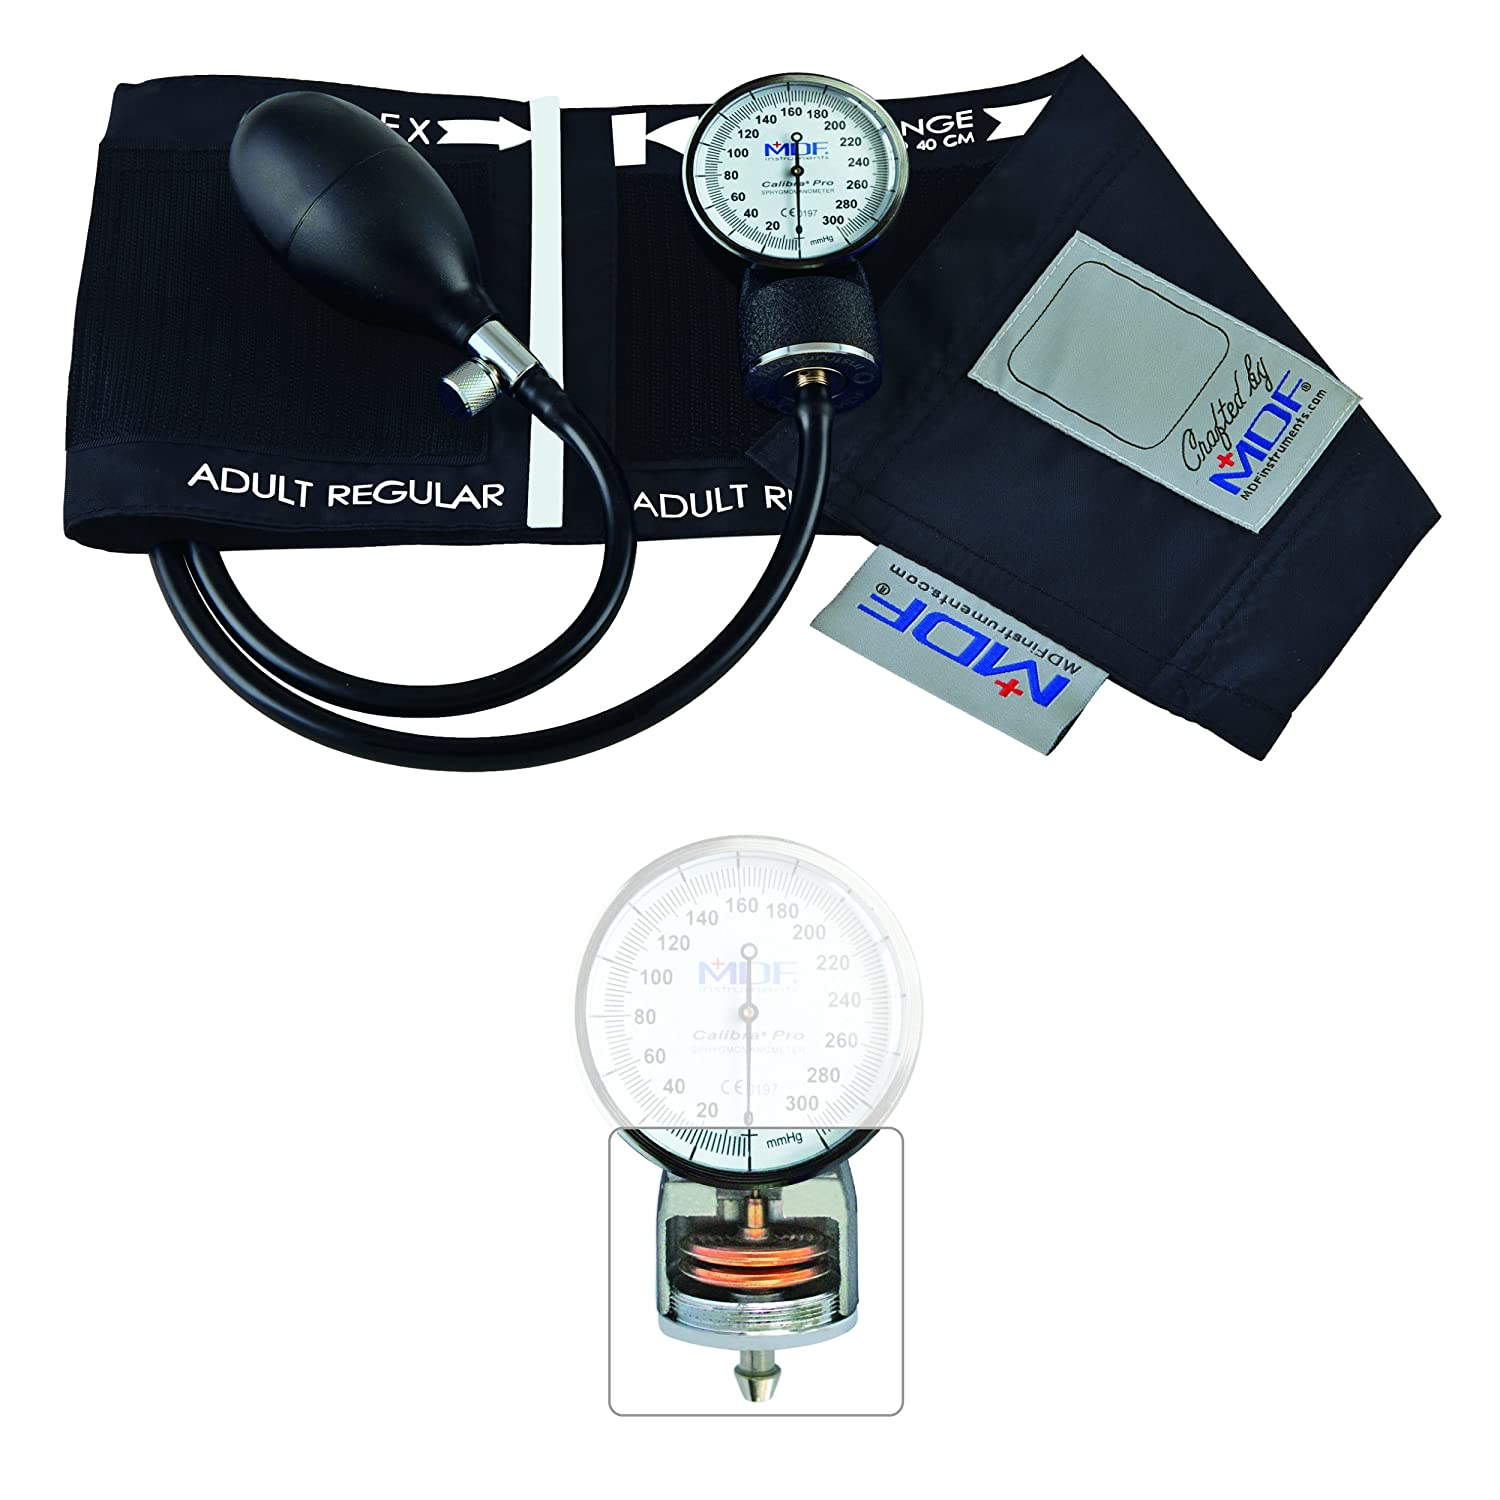 Amazon.com: MDF Calibra Pro Aneroid Sphygmomanometer - Blood Pressure Monitor with Adult Sized Cuff Included - Full & Free-Parts-For-Life - Black ...